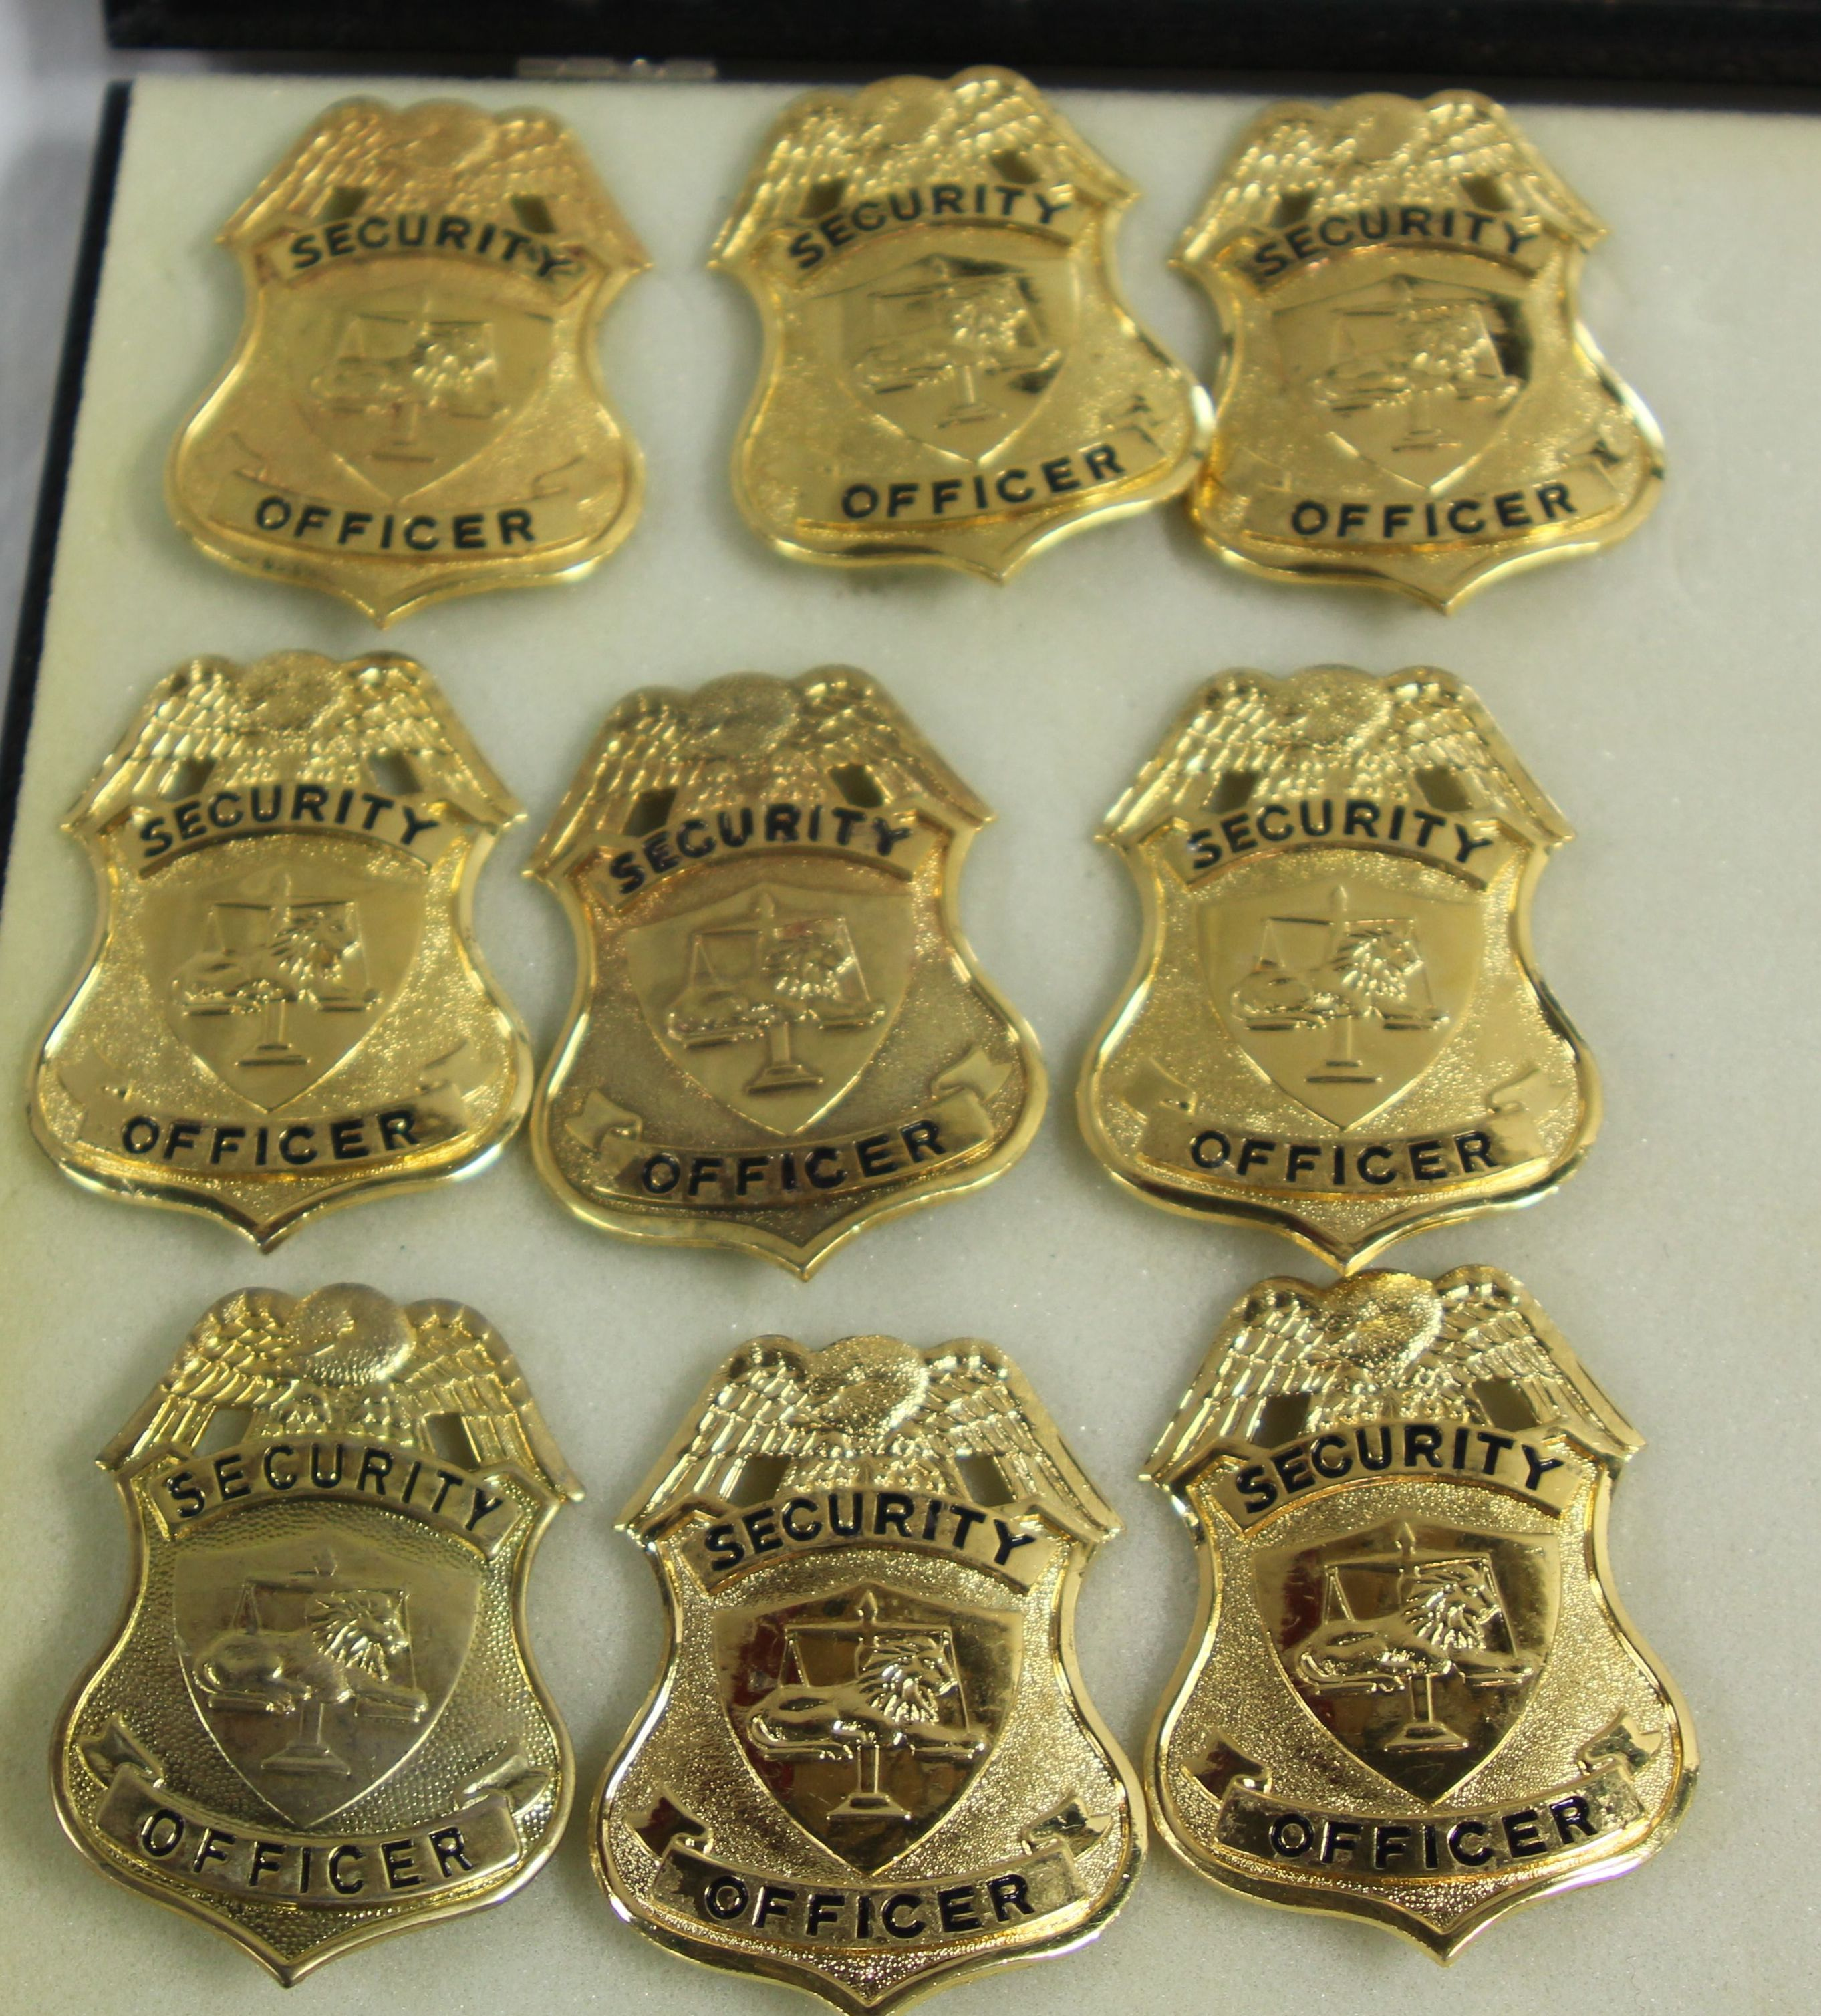 Gold Security Office Badges